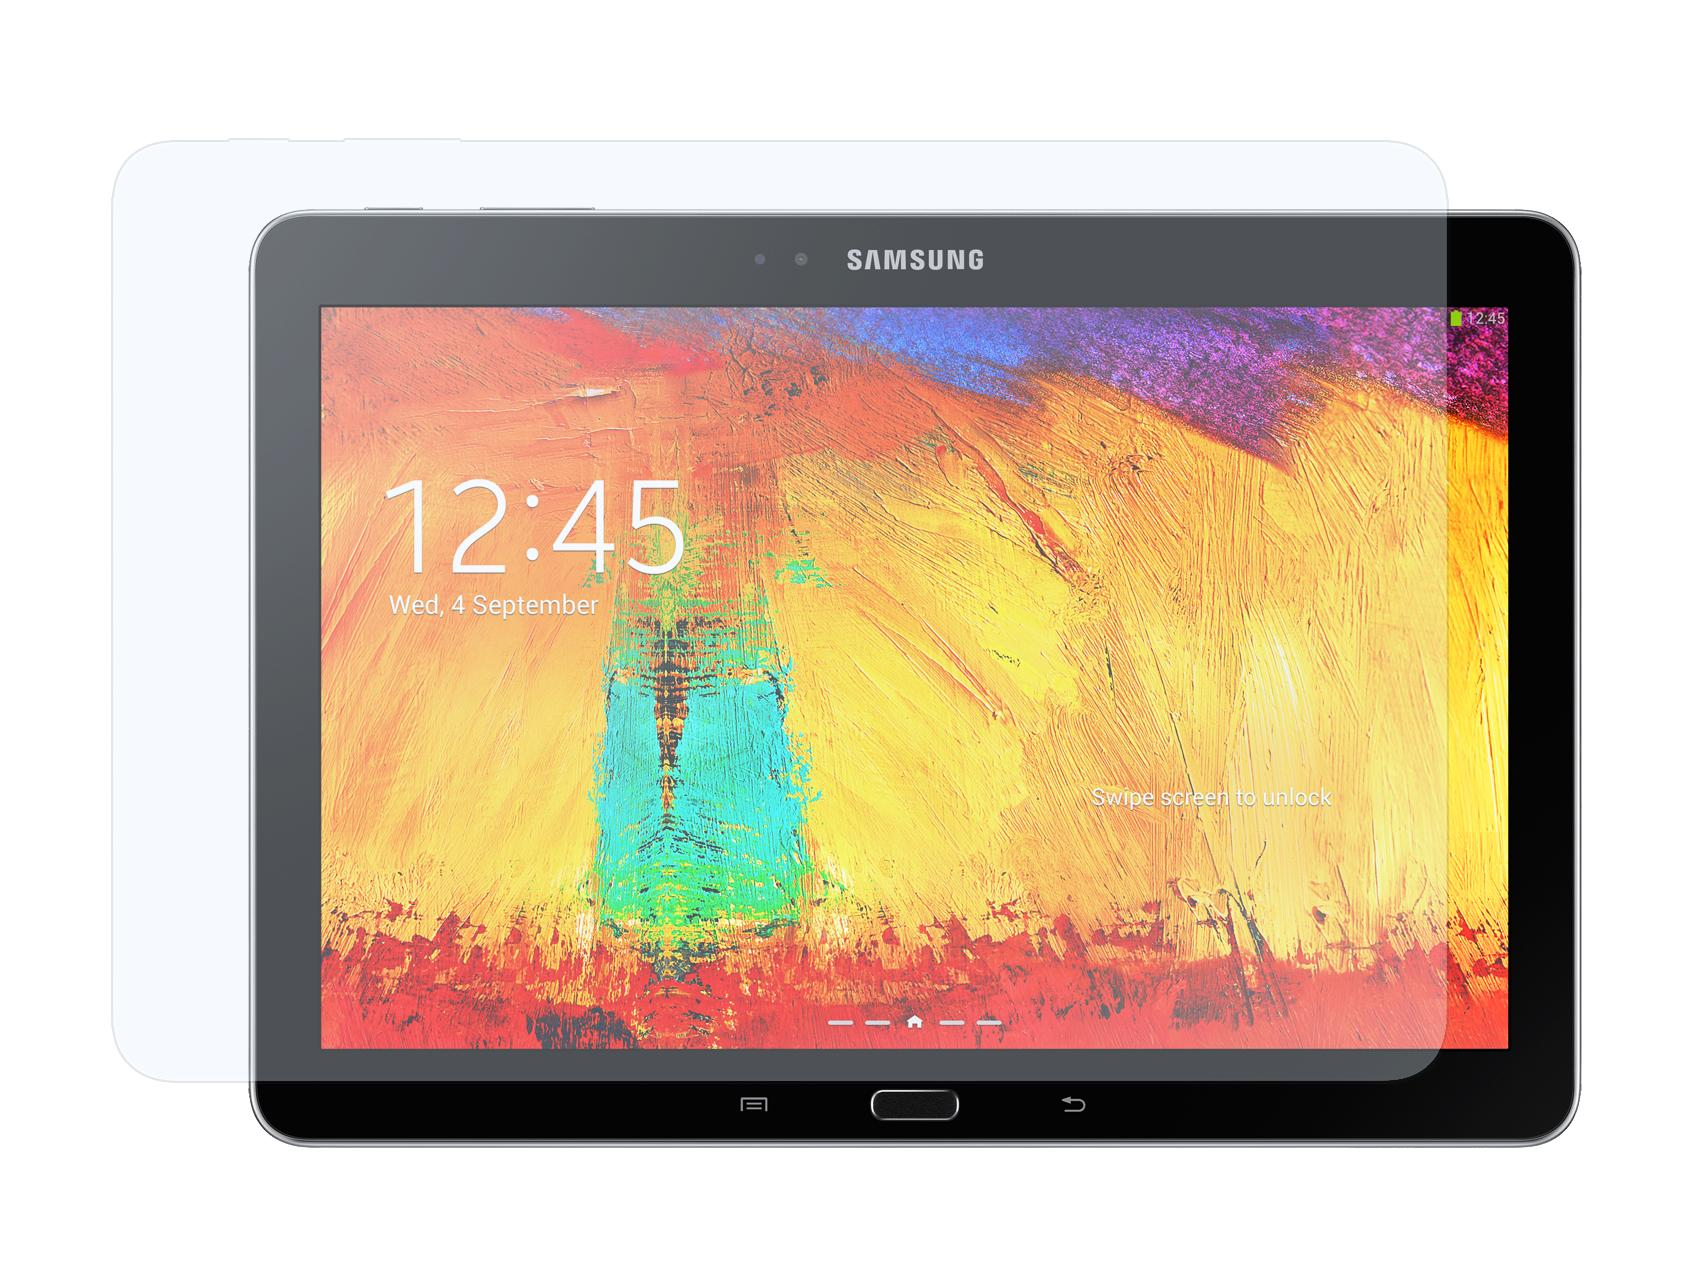 ������ Anymode ���������� ��� Galaxy Note 10.1 P6050 (2 ��.)